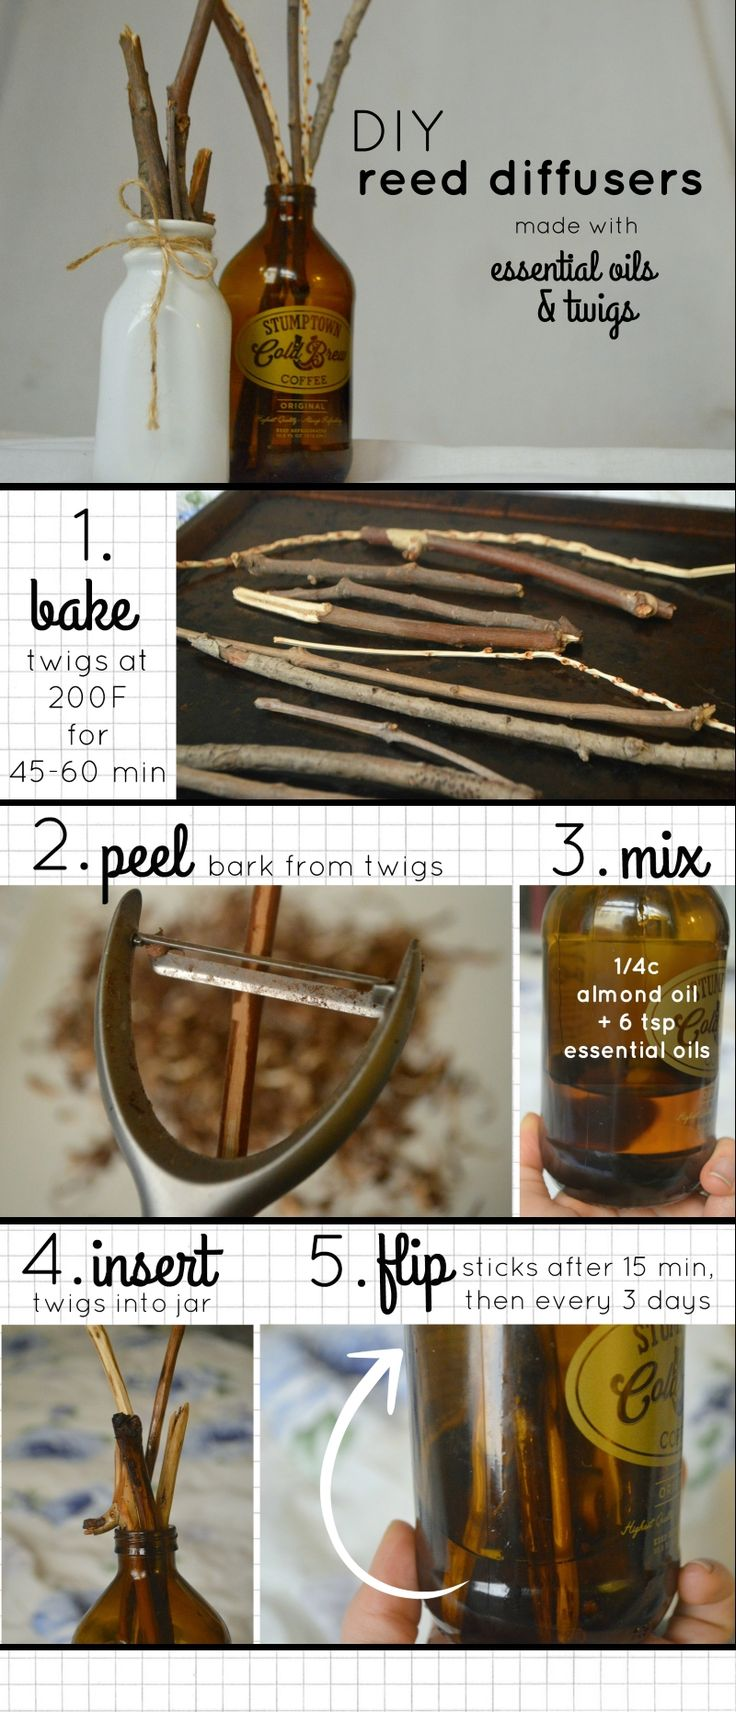 DIY Reed Diffusers to use with Essential Oils! (I haven't tried this yet, but looks really cute)